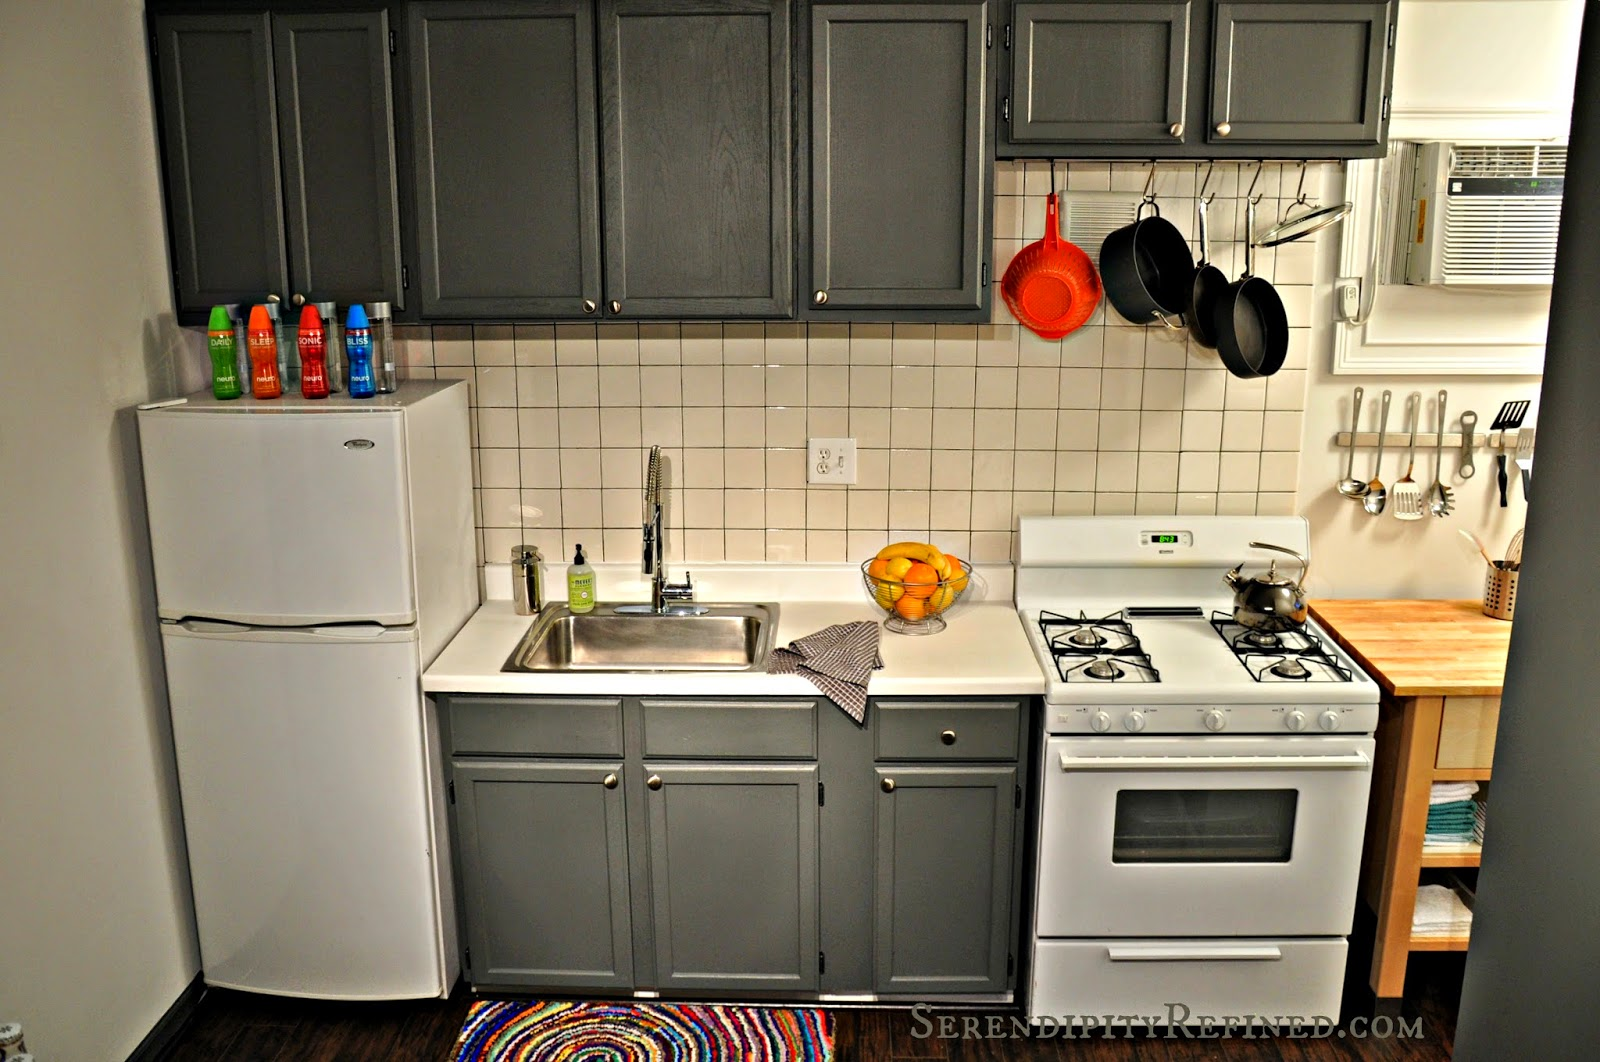 Diy kitchen makeover pthyd for Small galley kitchen makeovers budget